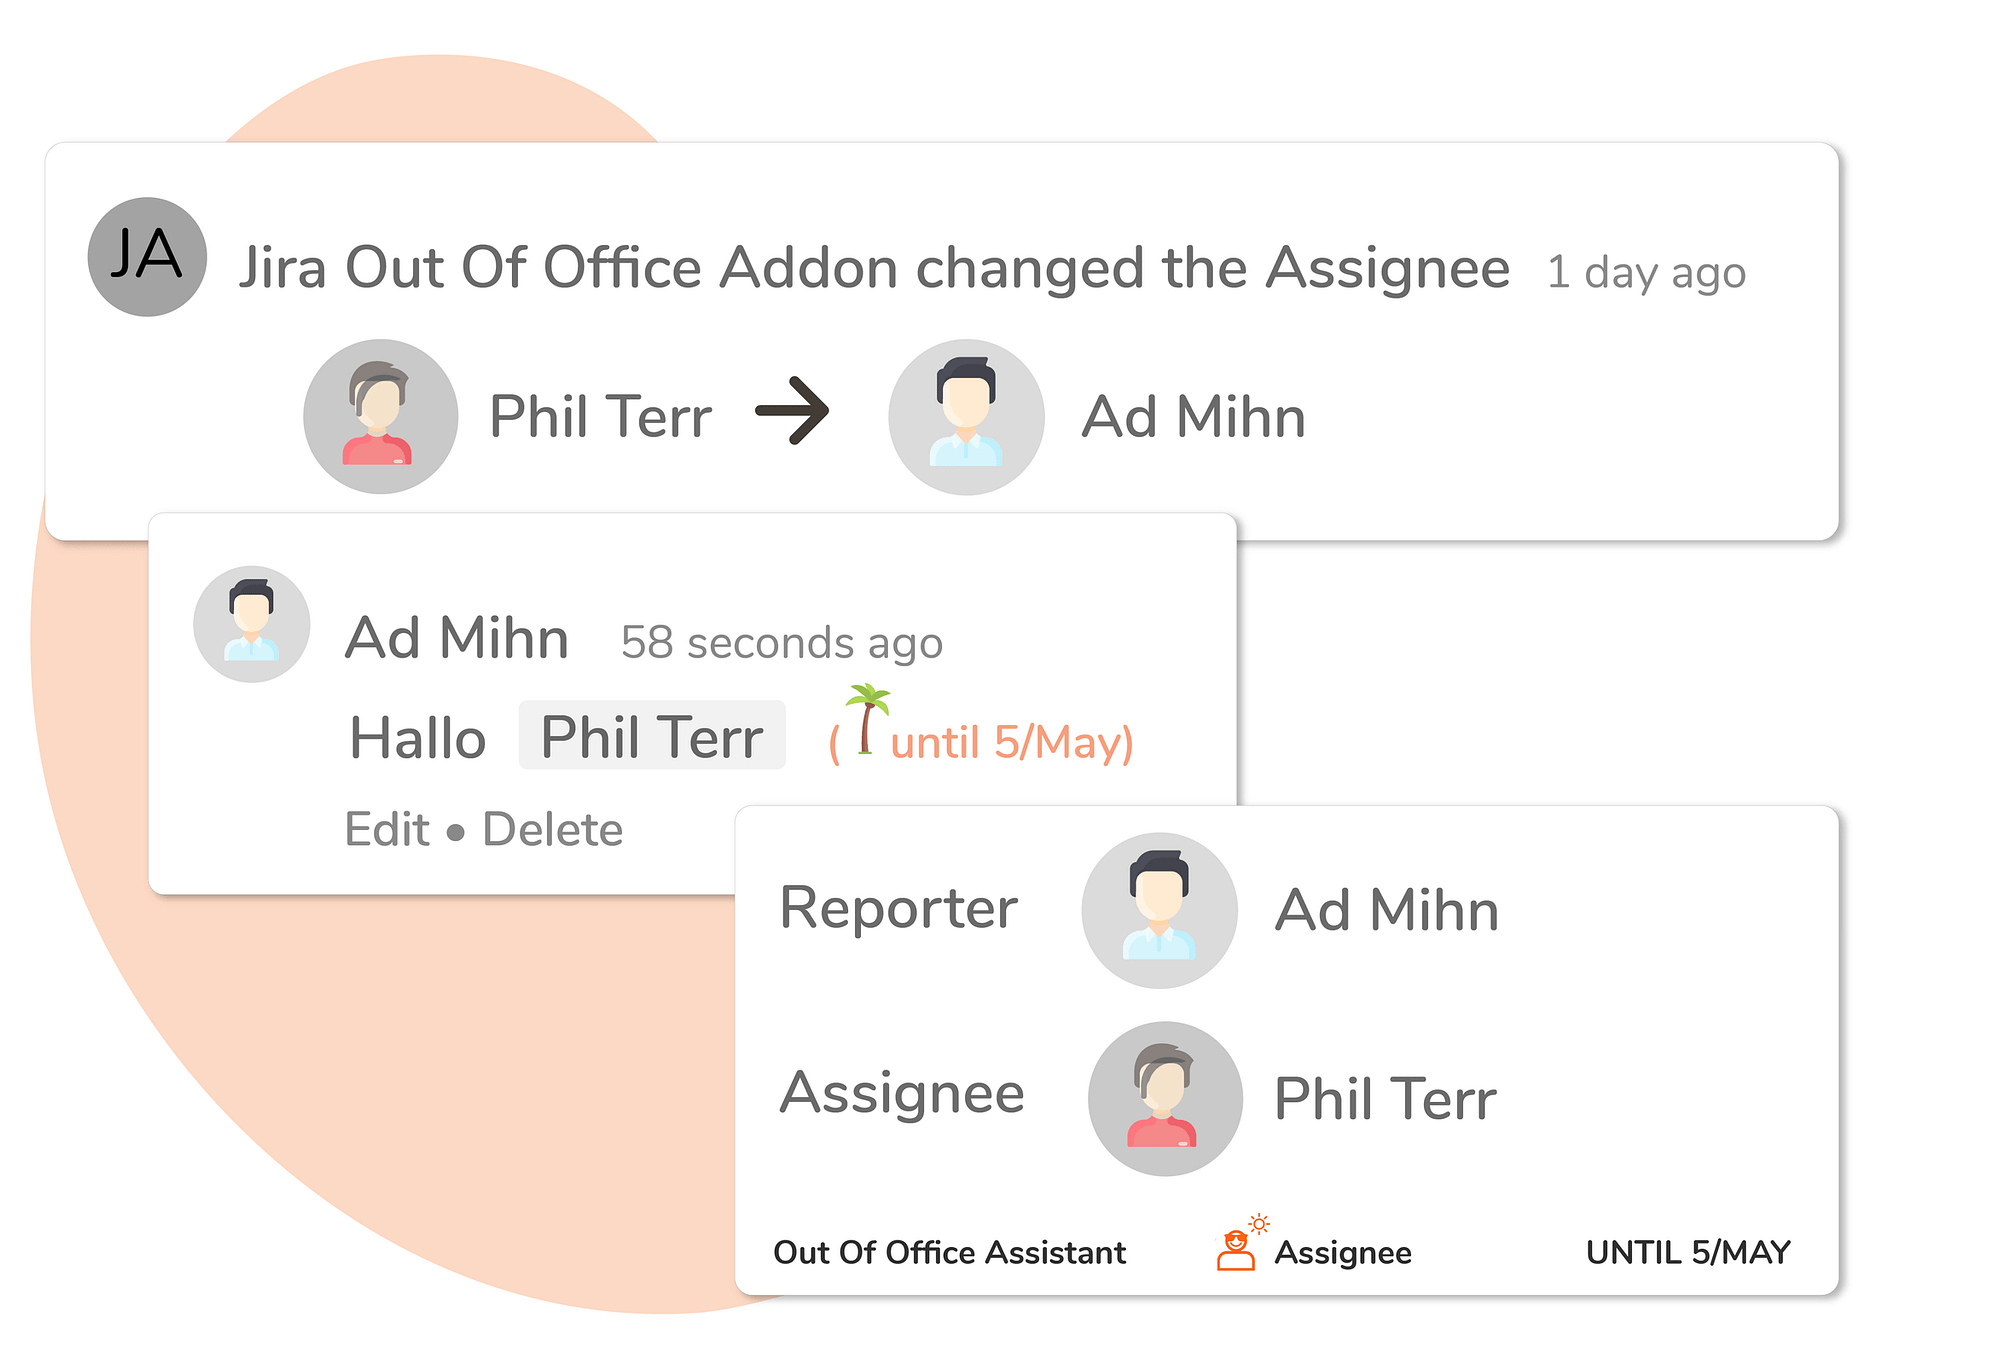 In Issue & Dashboard View